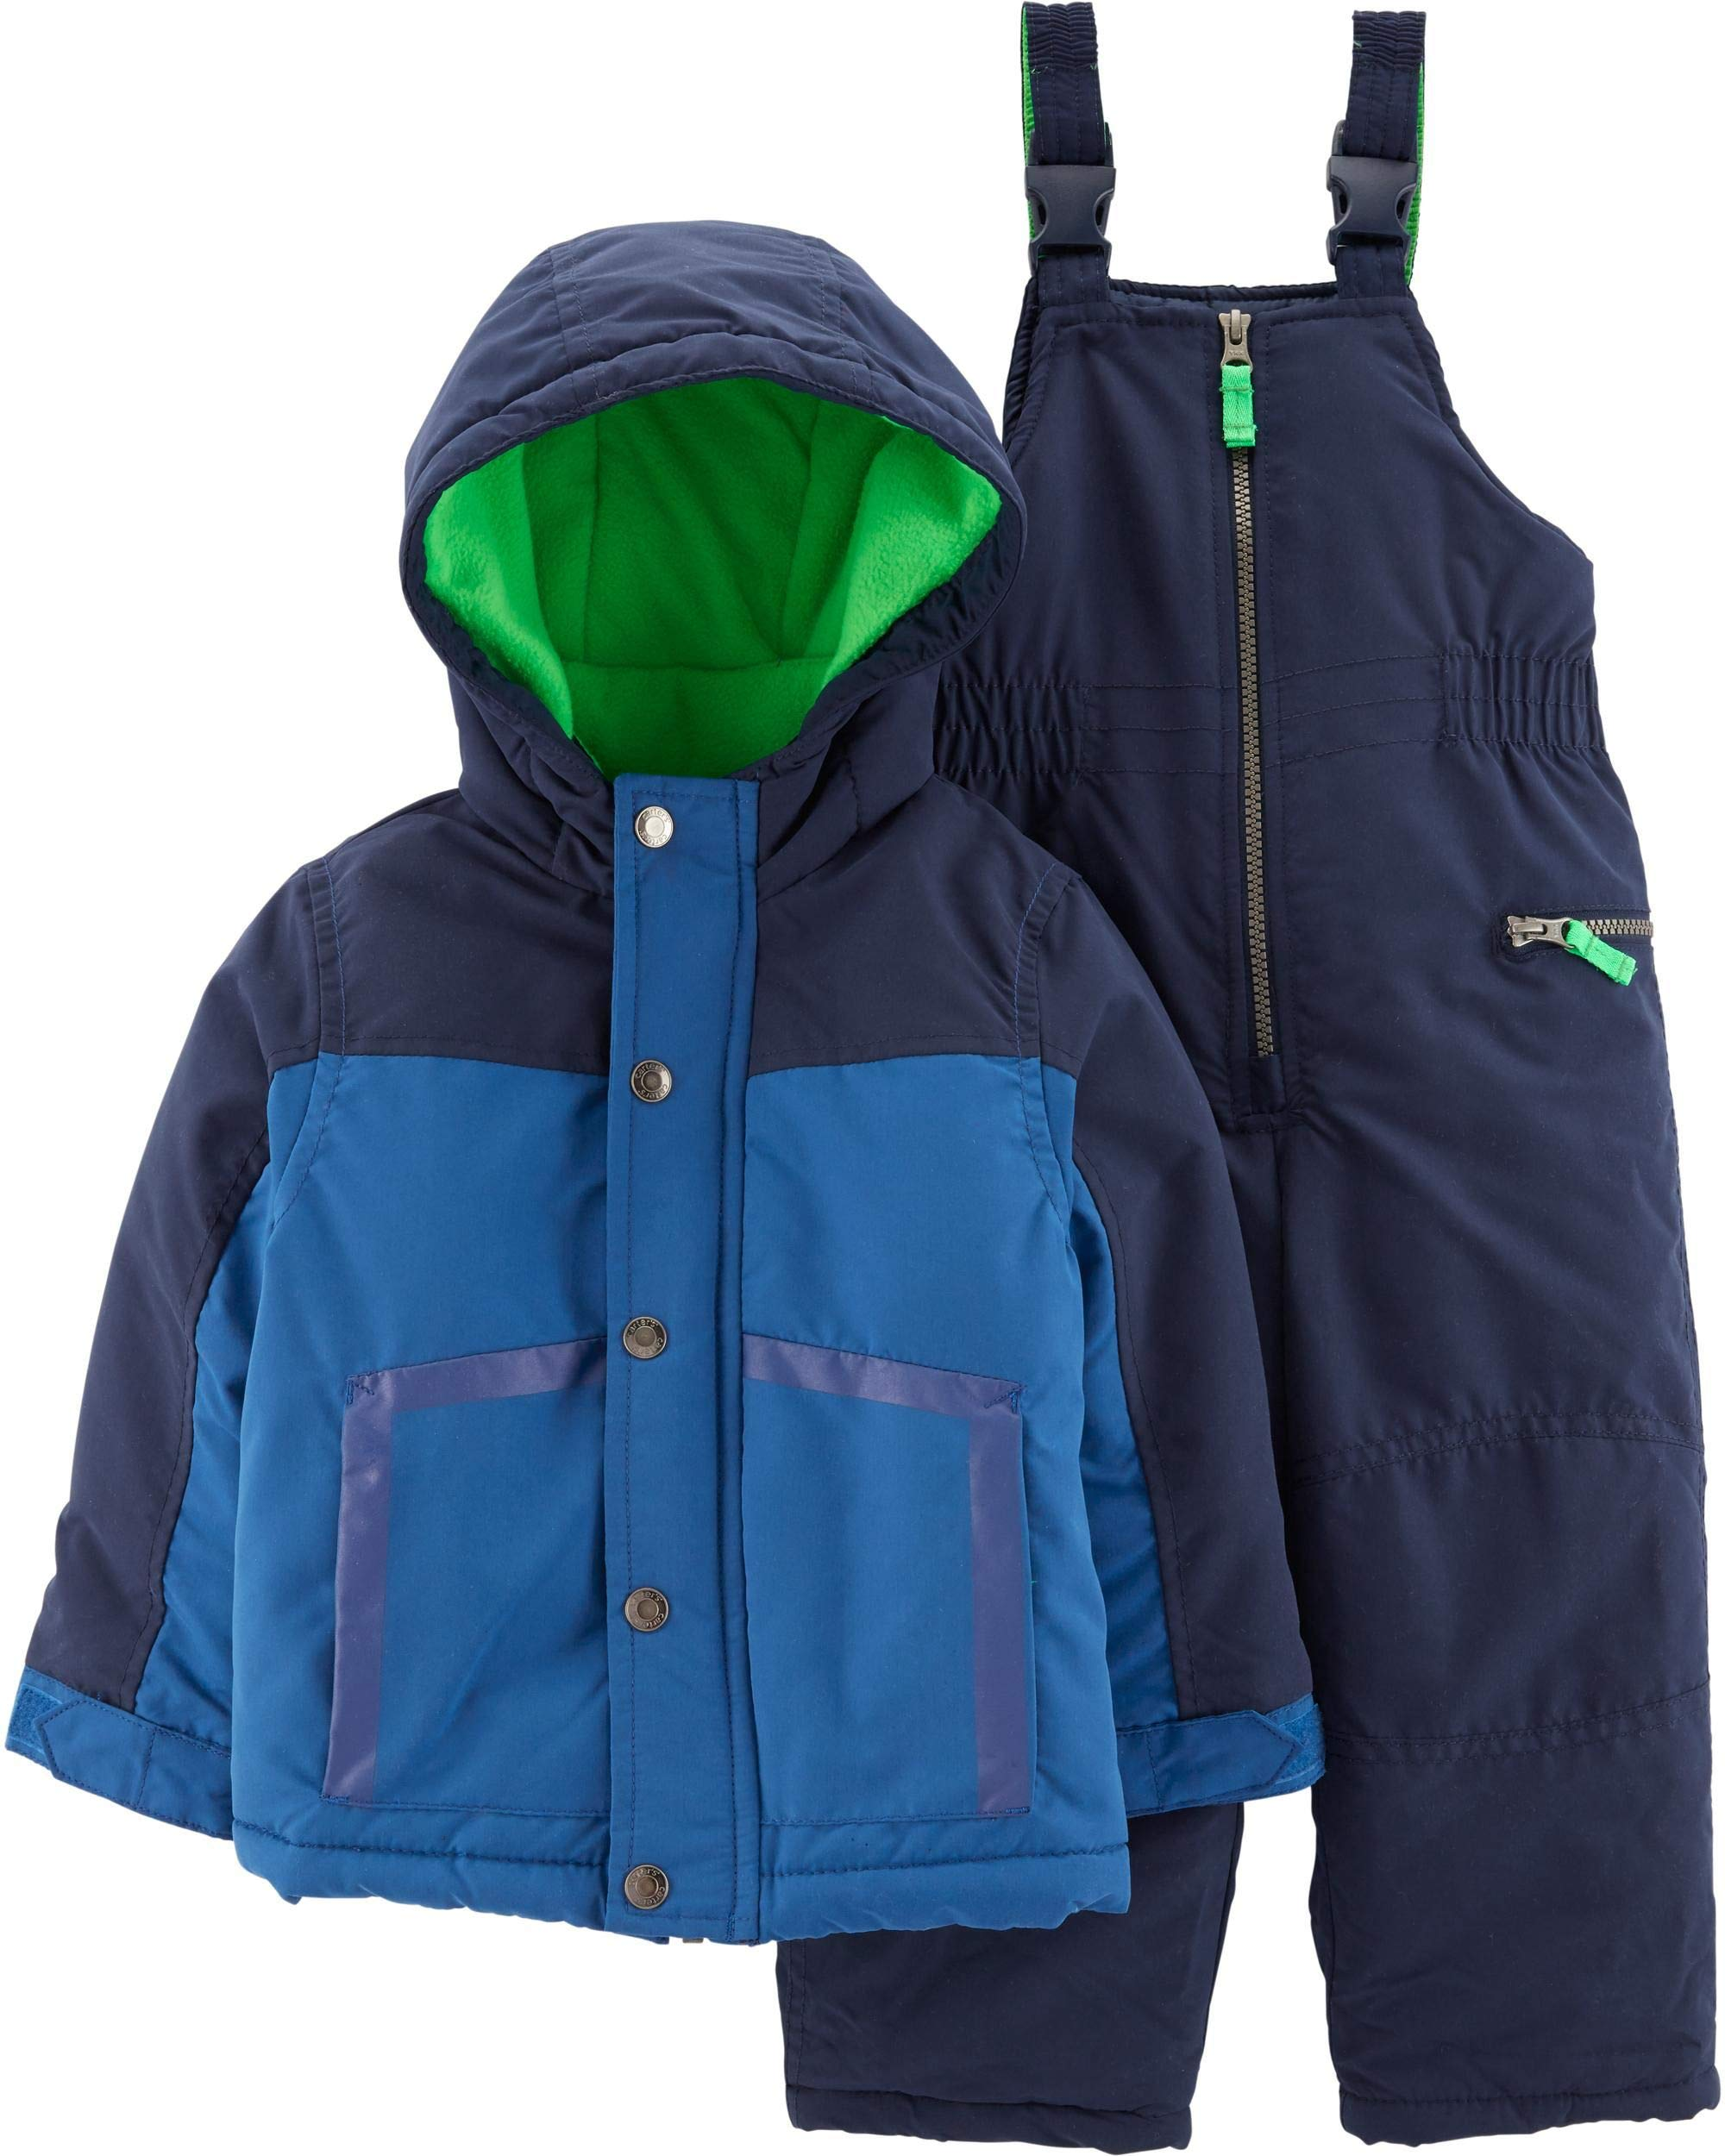 Carter's Boys' Heavyweight 2-Piece Skisuit Snowsuit (House Blue/Current Navy, 8)